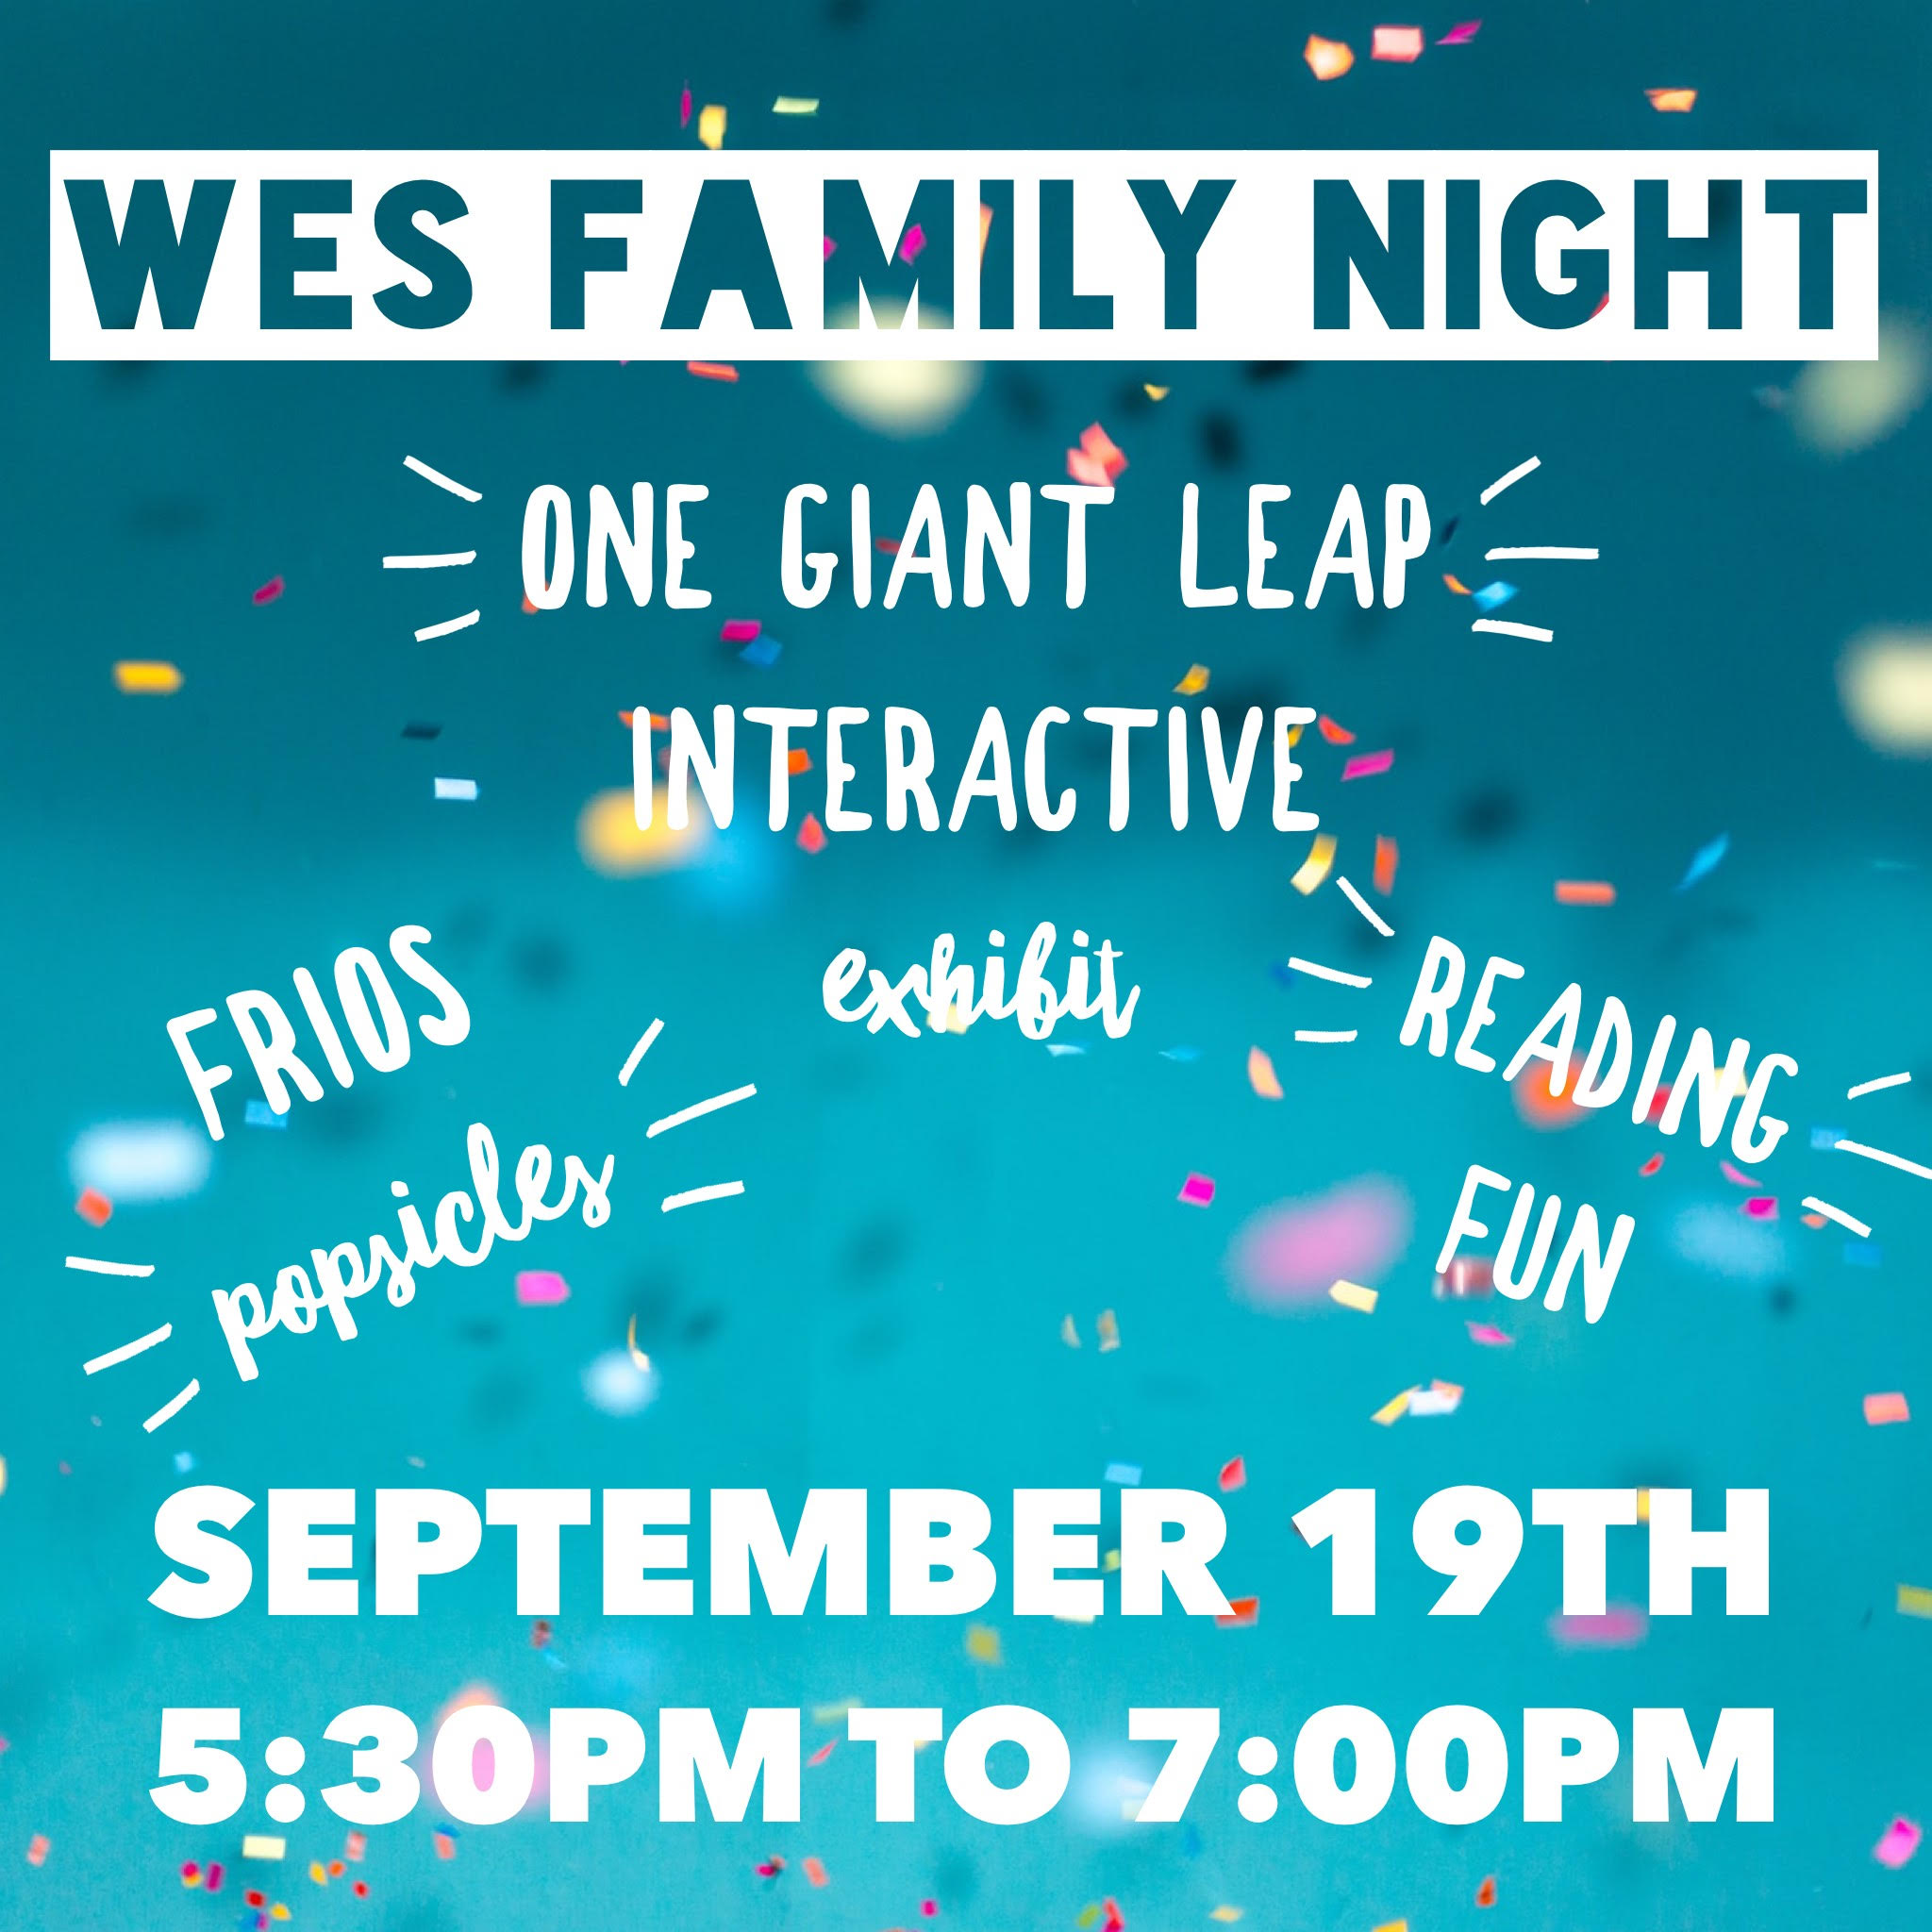 Please join us for Western Family Night!